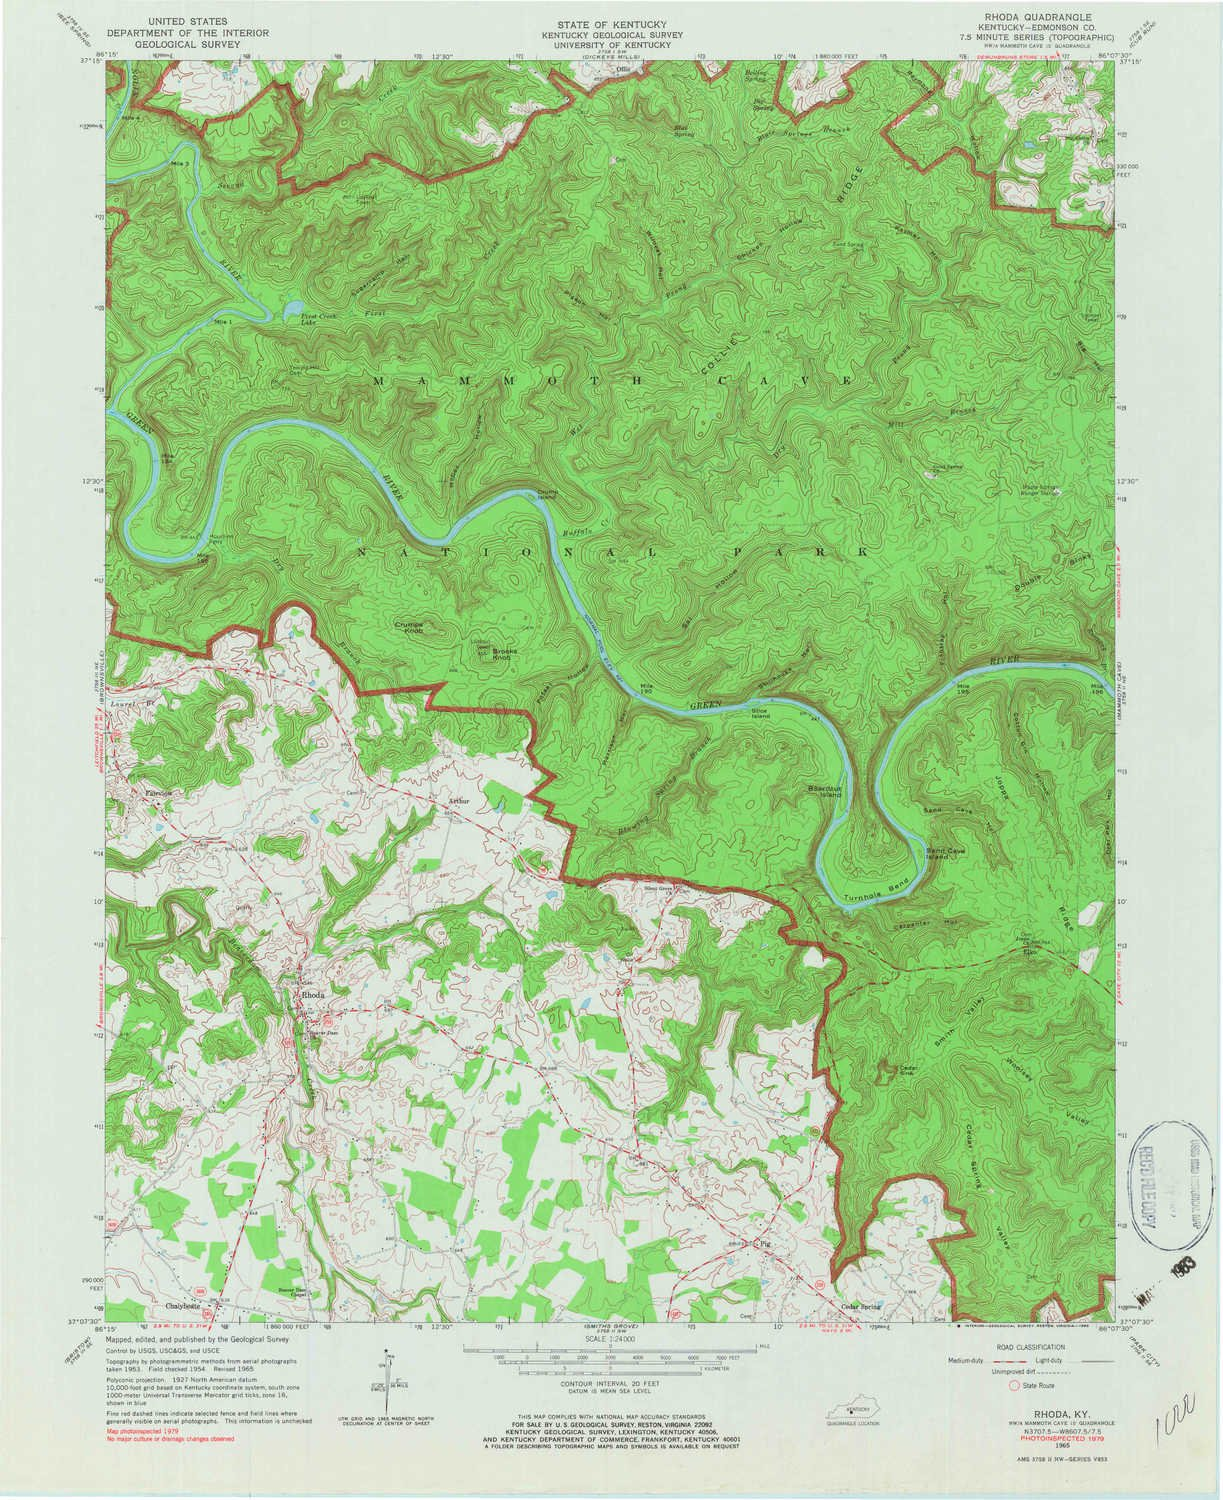 Southern Indiana Fishing Map Guide Jim Billig SPORTSMANS CONNECTION ...